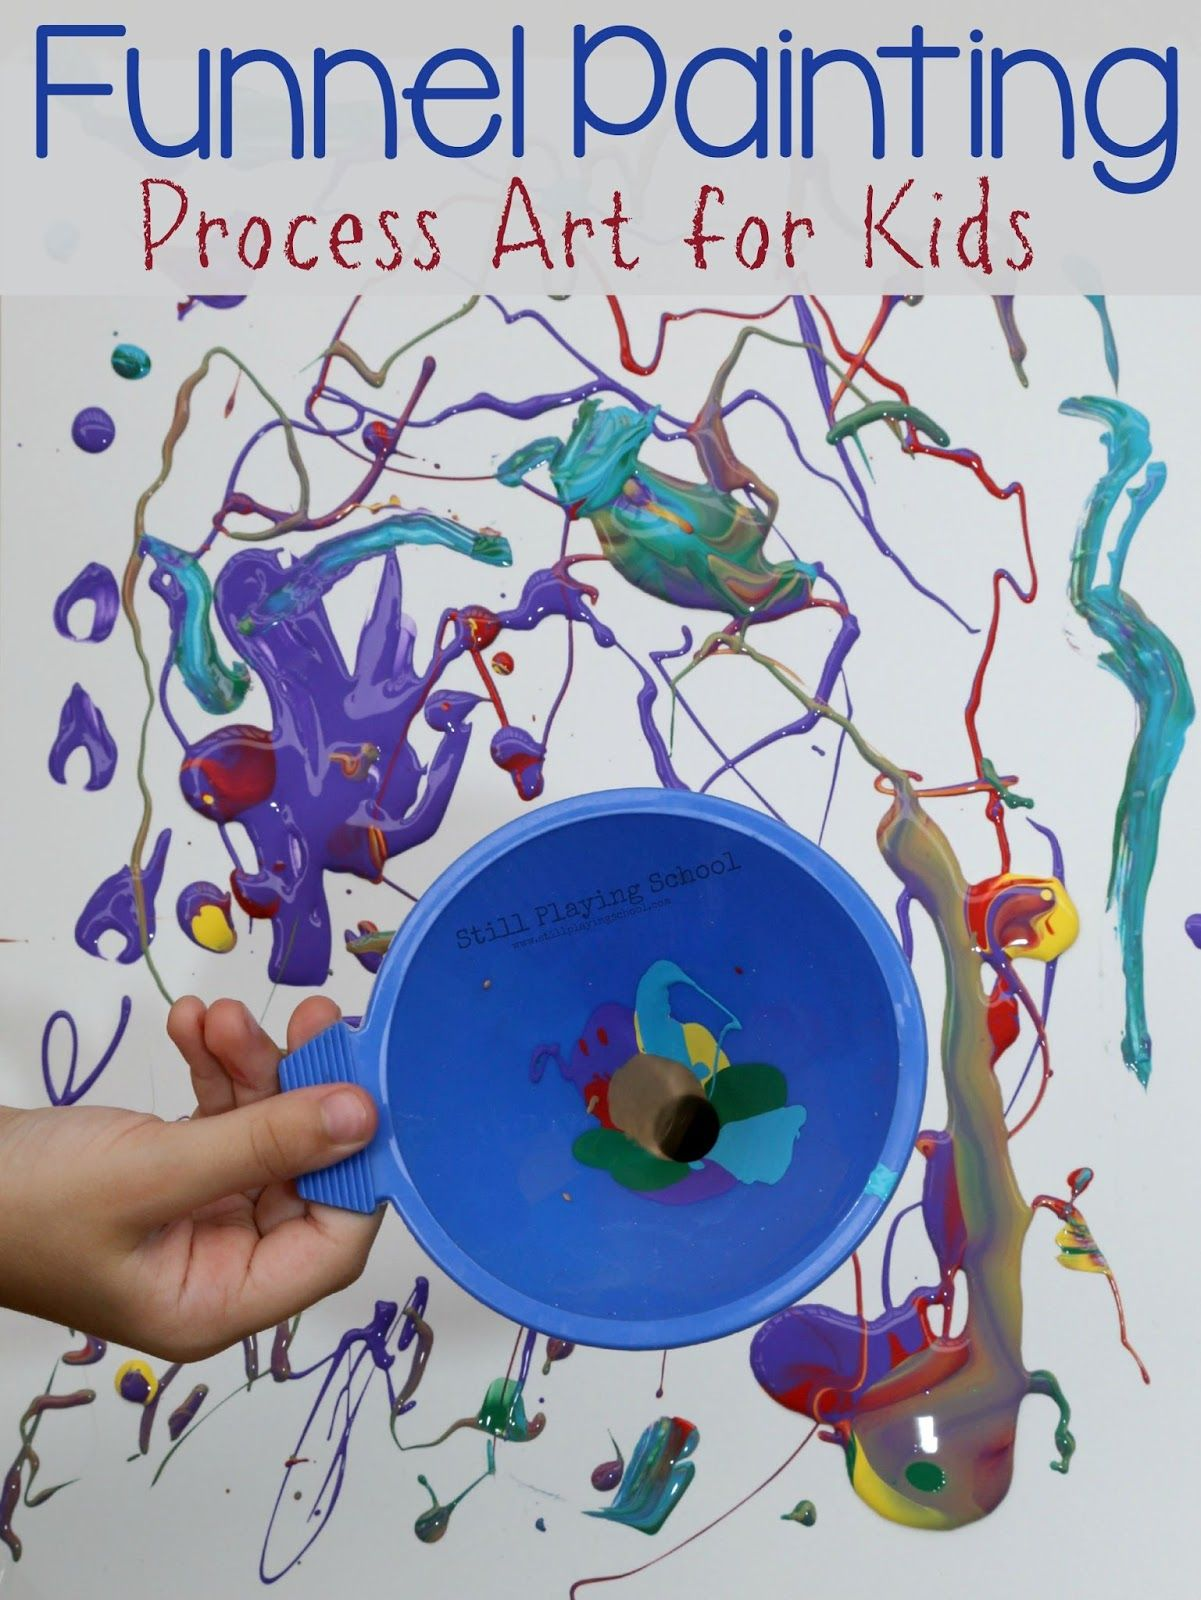 Funnel painting process art for kids process art for Craft paint safe for babies